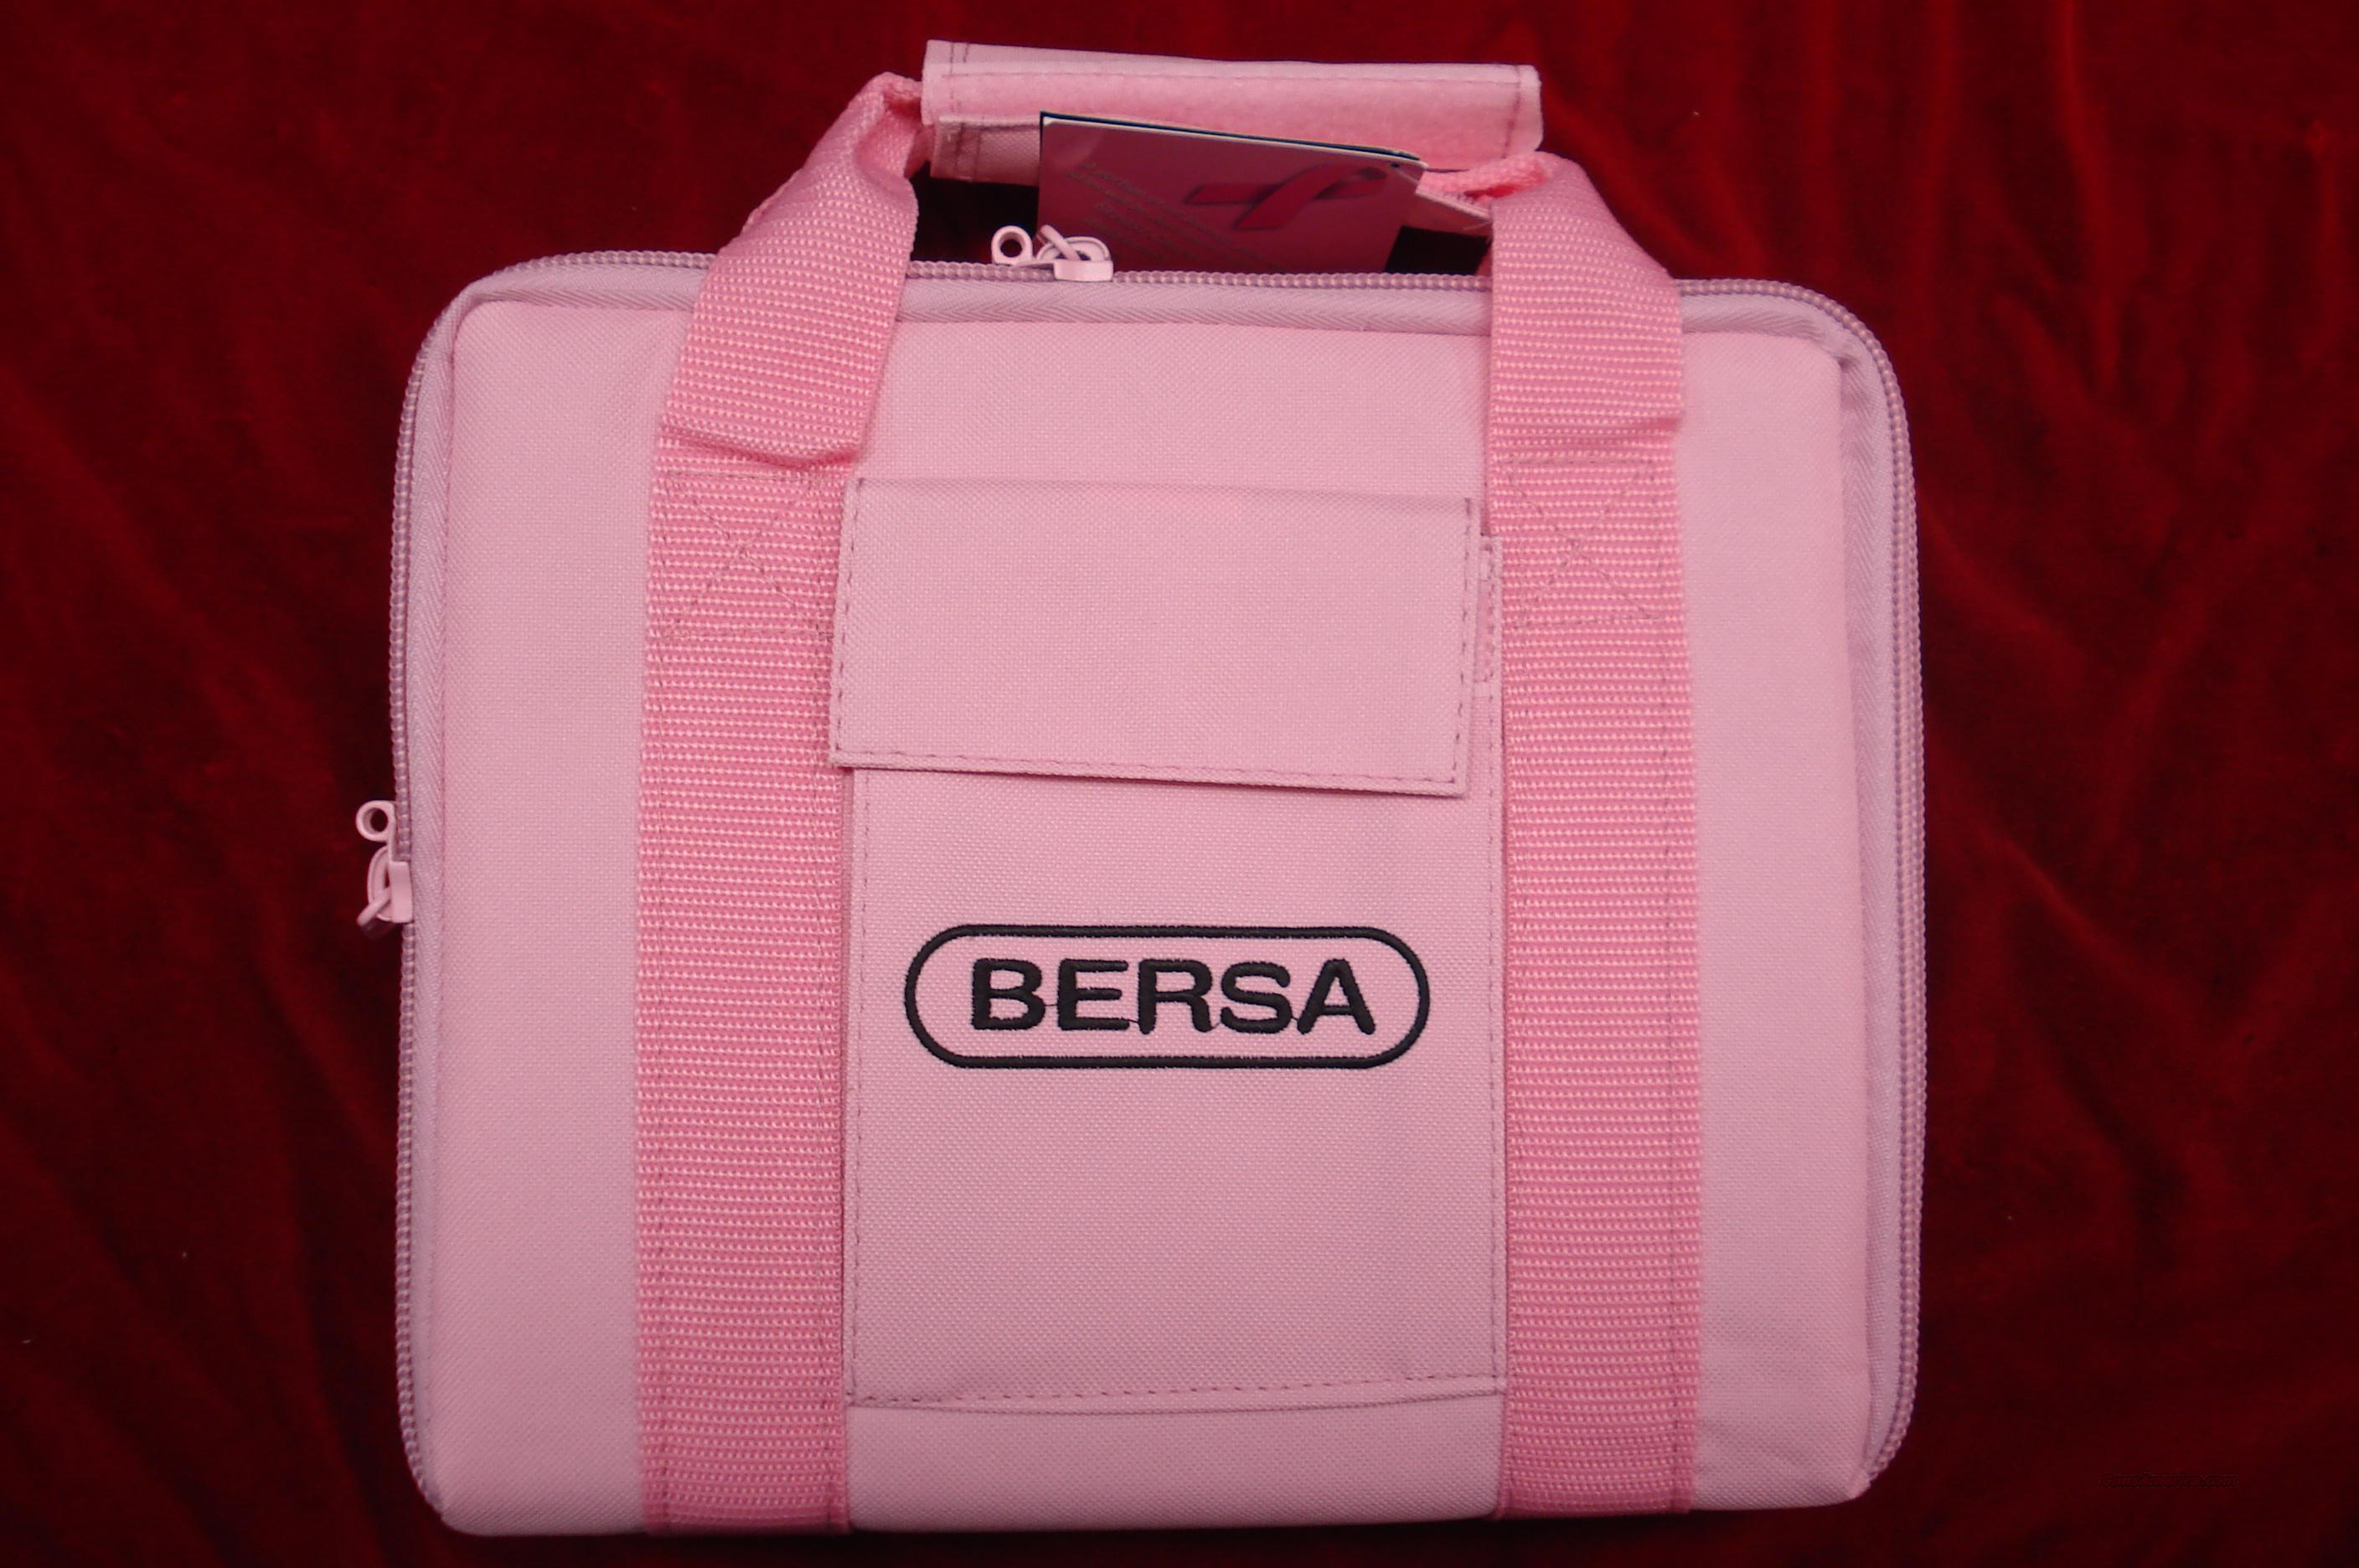 BERSA THUNDER 380CAL. WITH PINK GRIPS AND CASE NEW (BREAST CANCER AWARENESS)  Guns > Pistols > Bersa Pistols